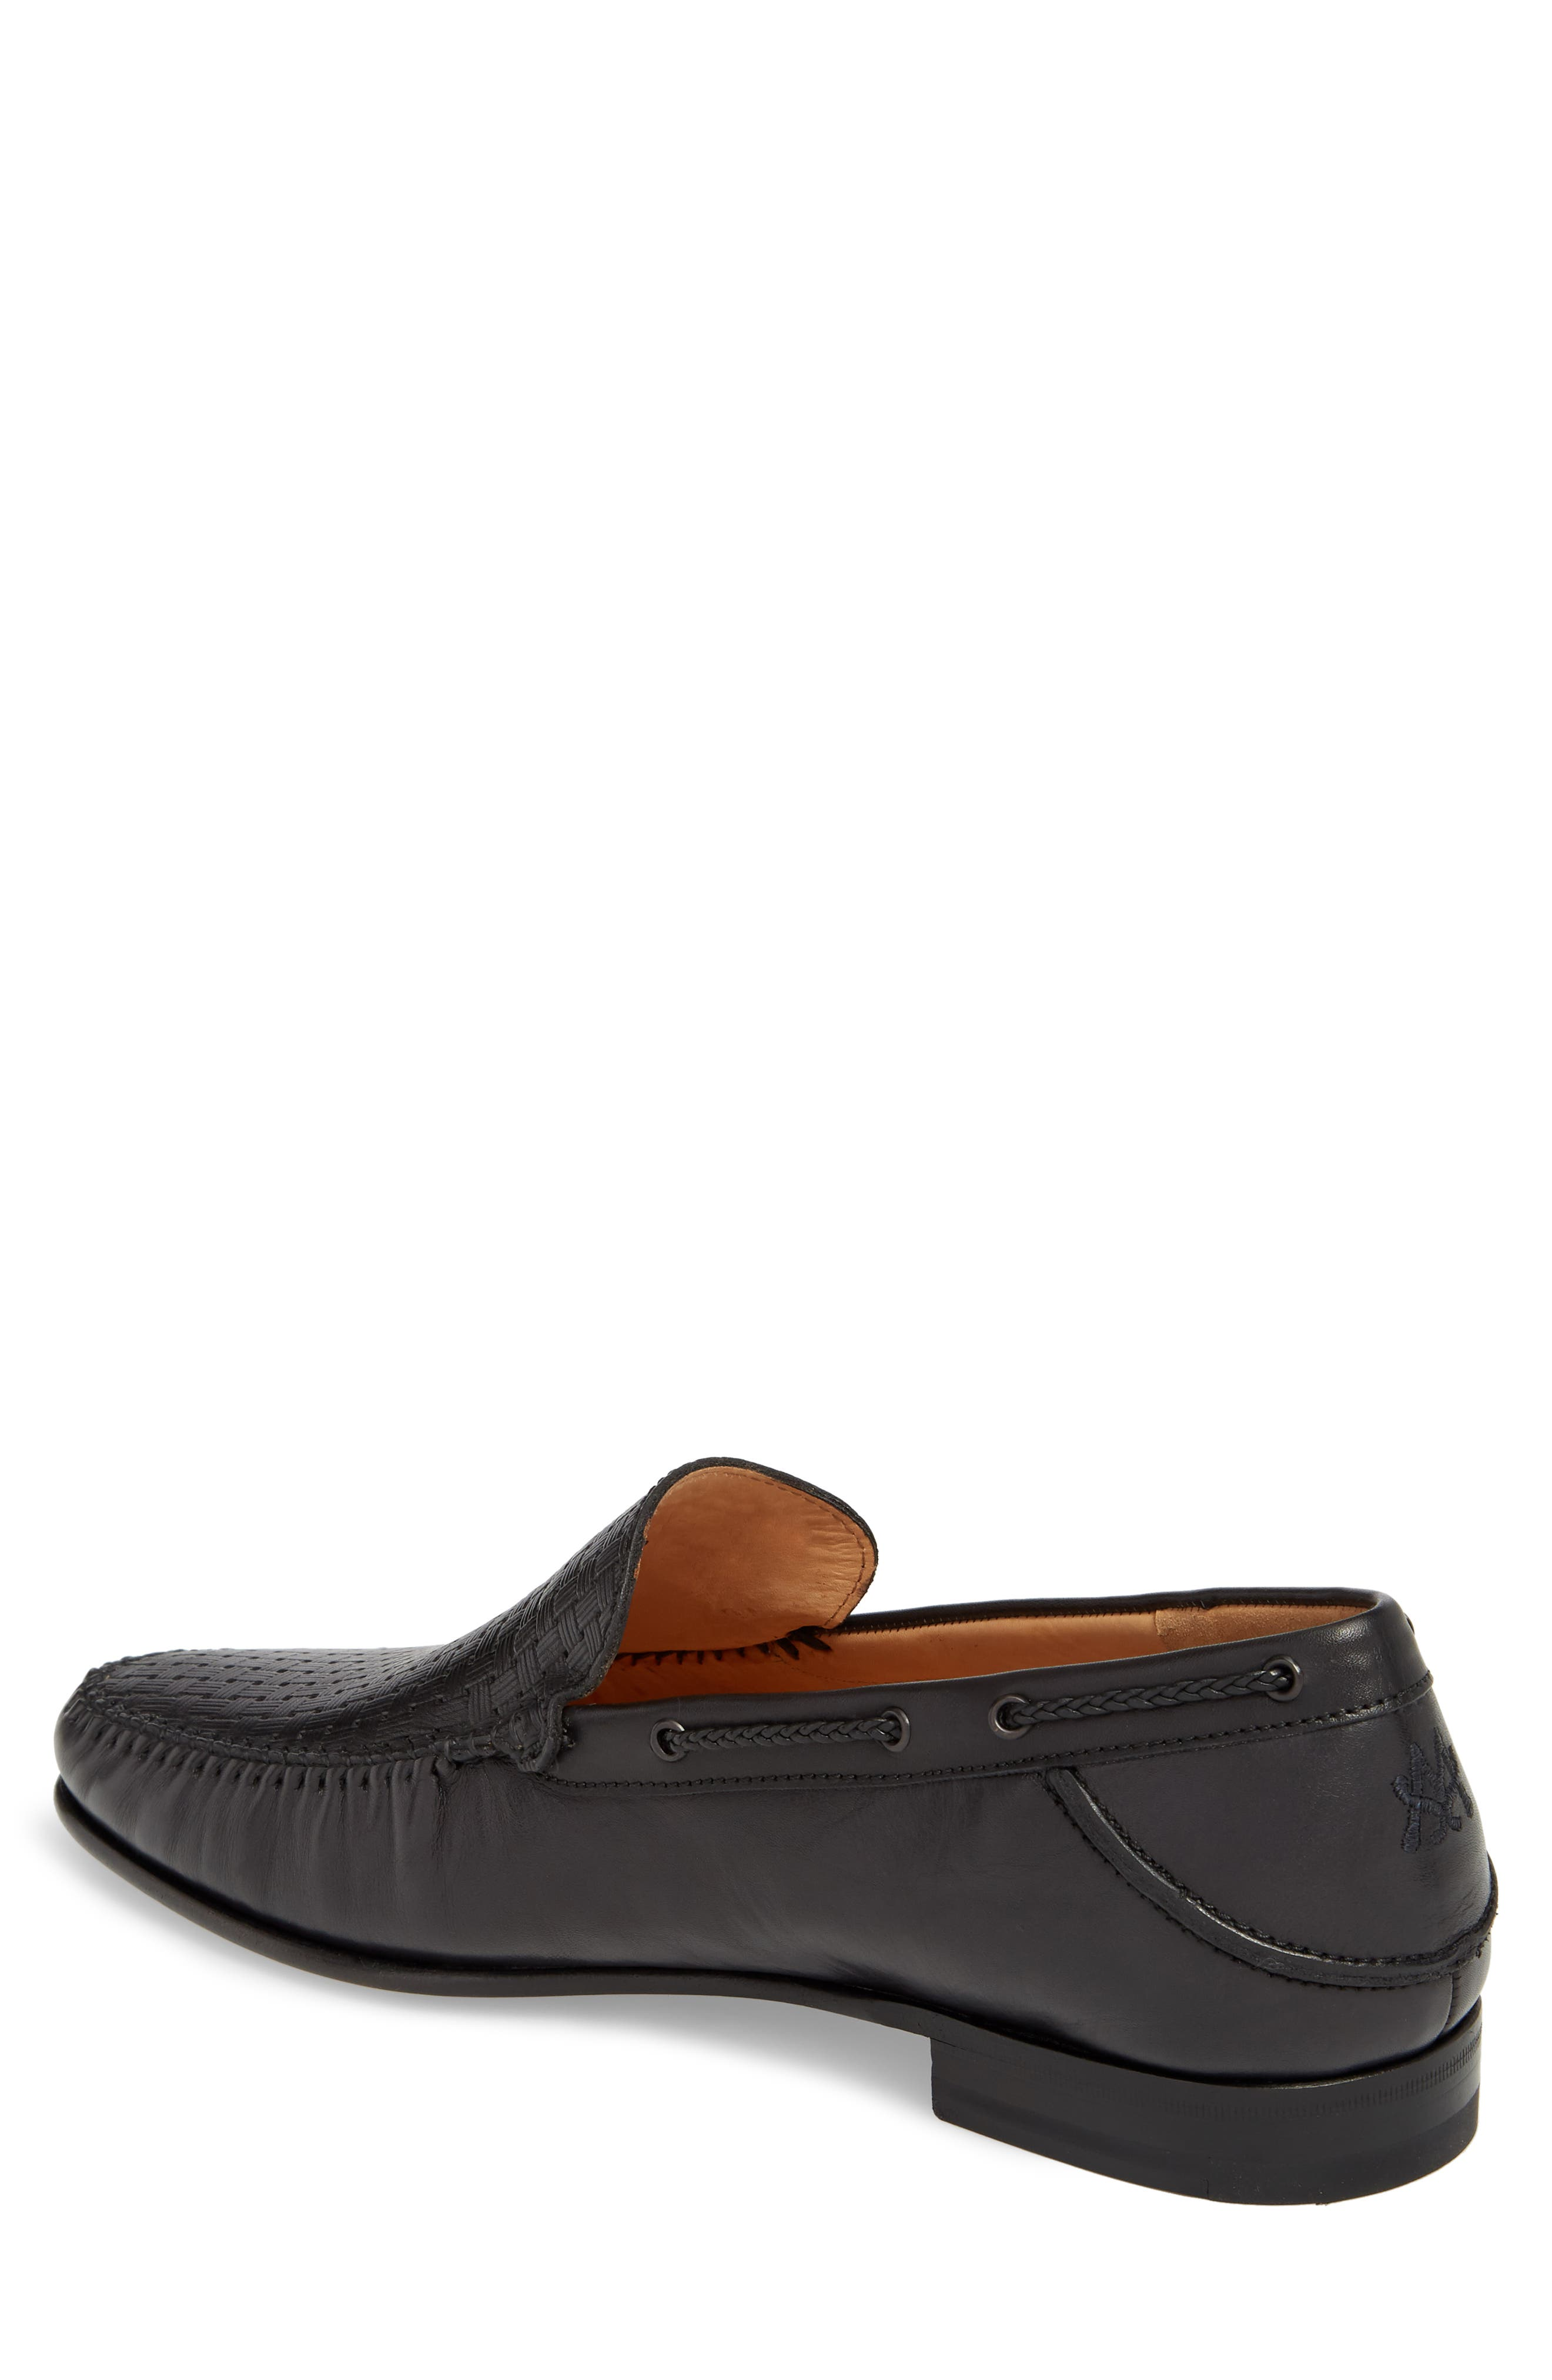 Jano Embossed Moc-Toe Loafer,                             Alternate thumbnail 2, color,                             BLACK LEATHER